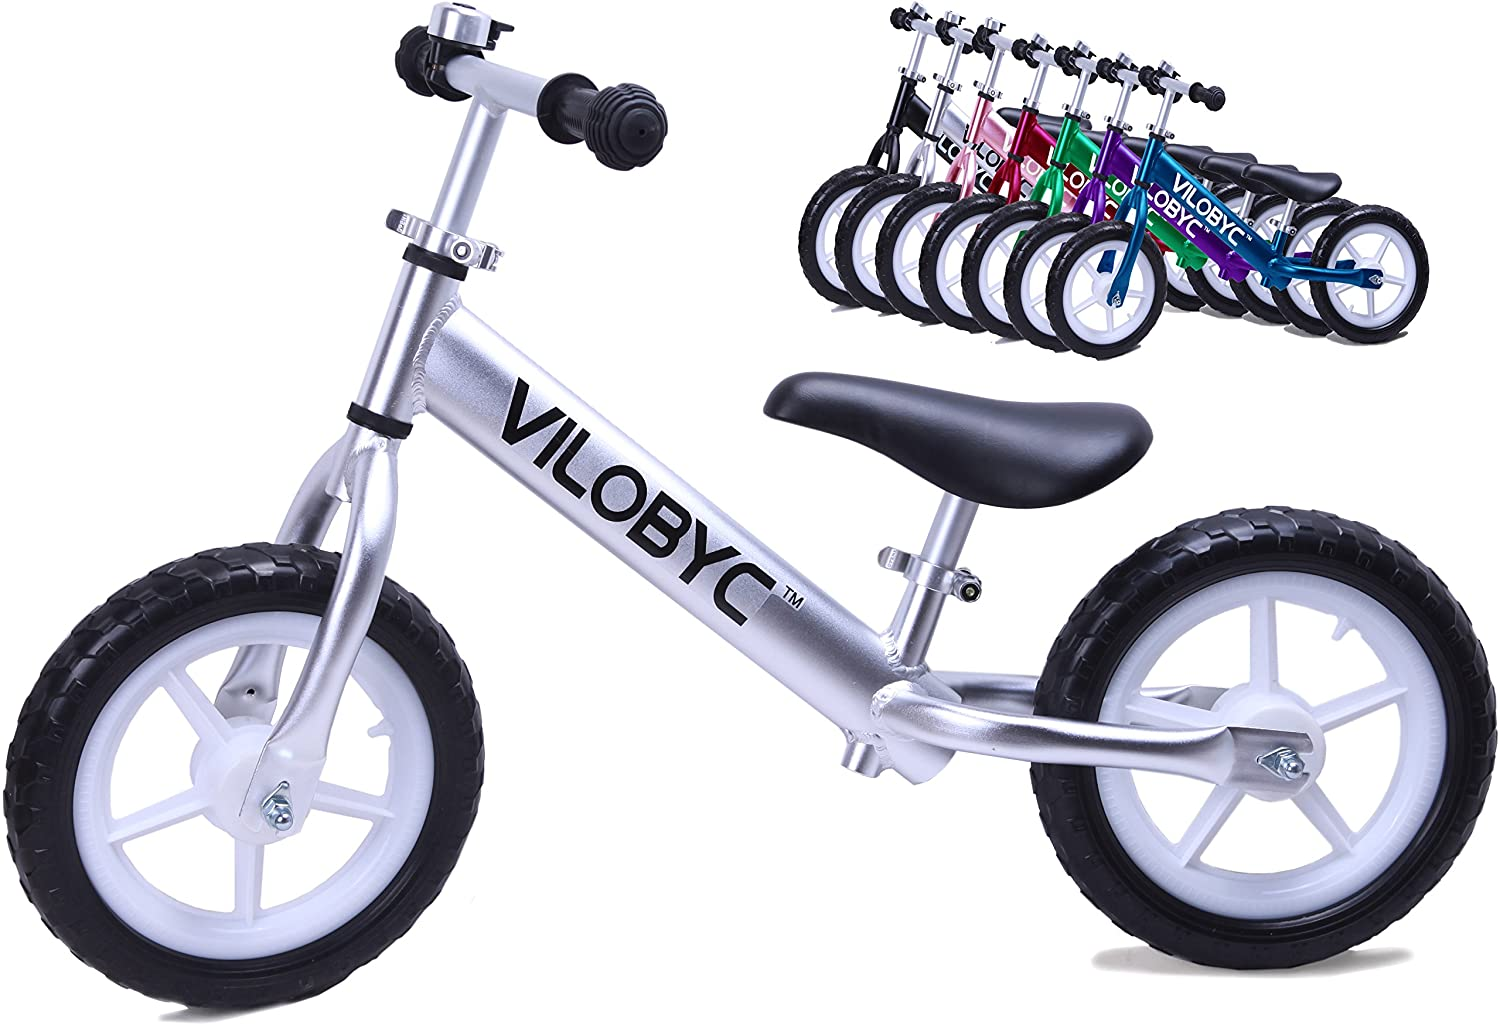 VILOBYC 12 Anodised Aluminium Alloy Kids Push Ultralight Balance Bike (4.3 lbs) Child 18 Month to 5 Years Old Bicycle 2018